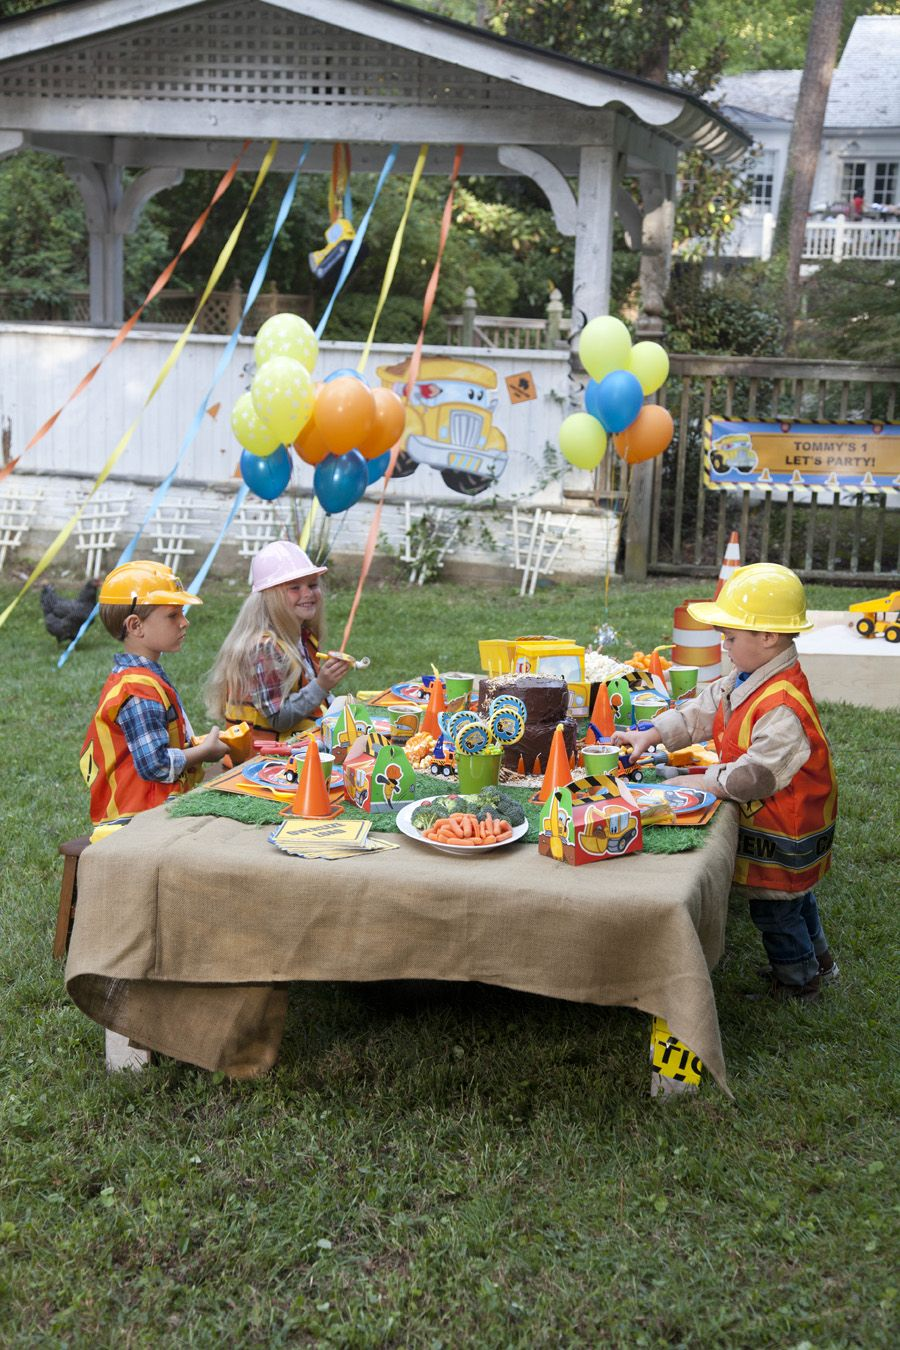 Construction Pals Birthday Party Planning Guide #Birthday #Kids #BirthdayExpress